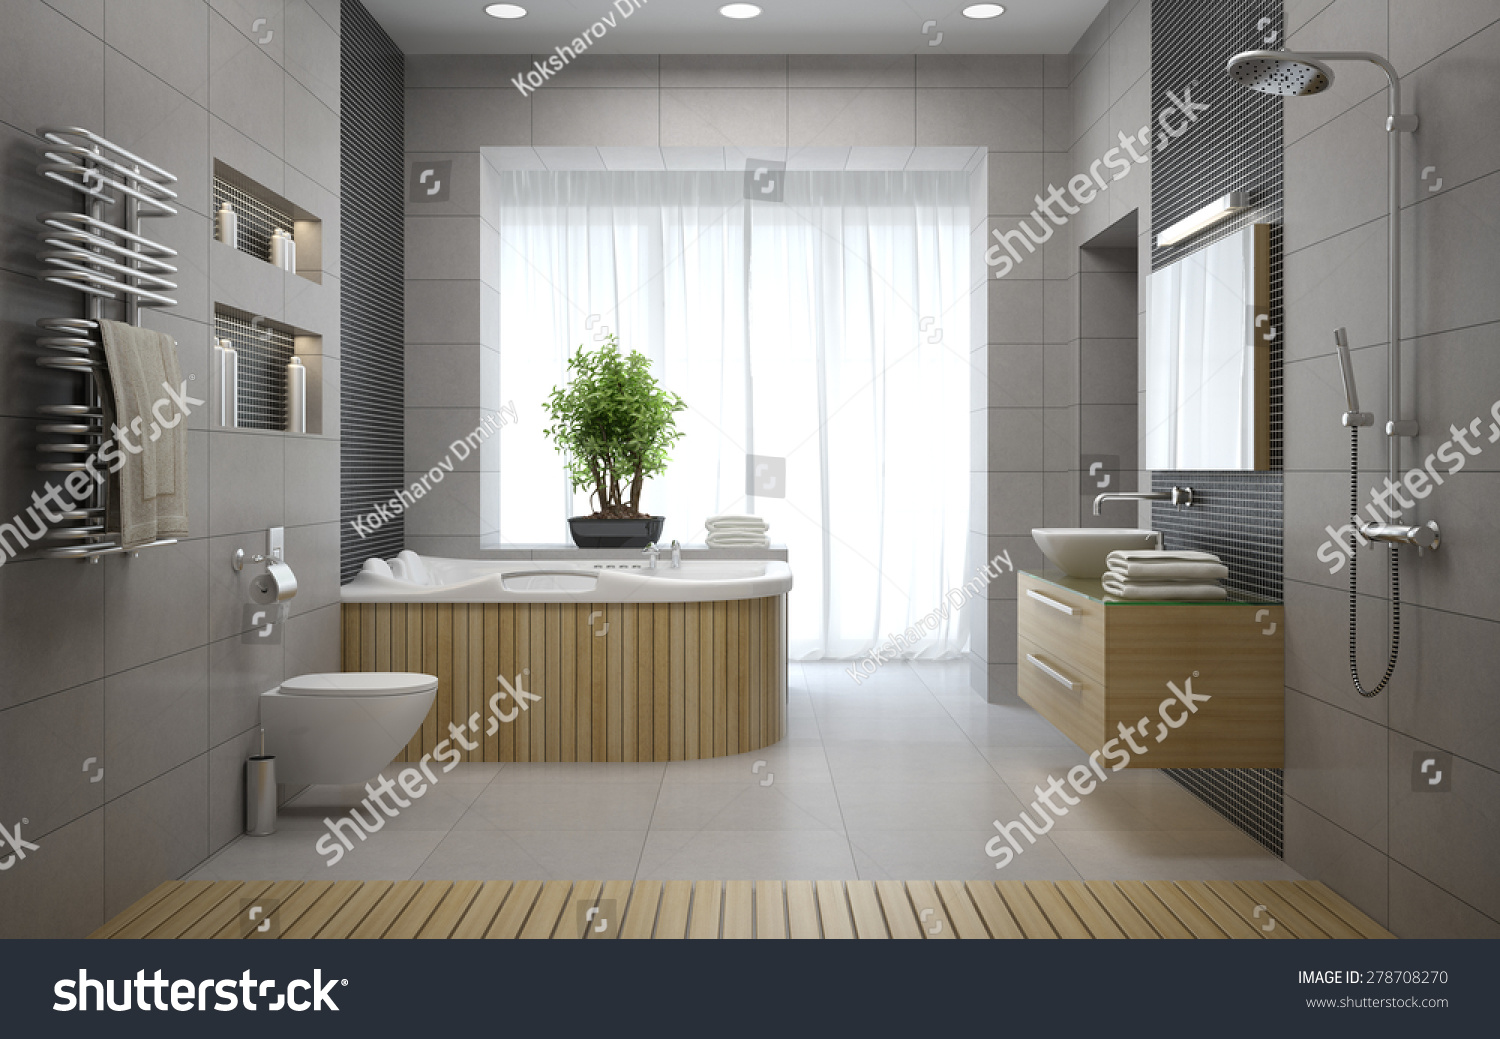 interior of the modern design bathroom 3d rendering - Modern Design Bathroom